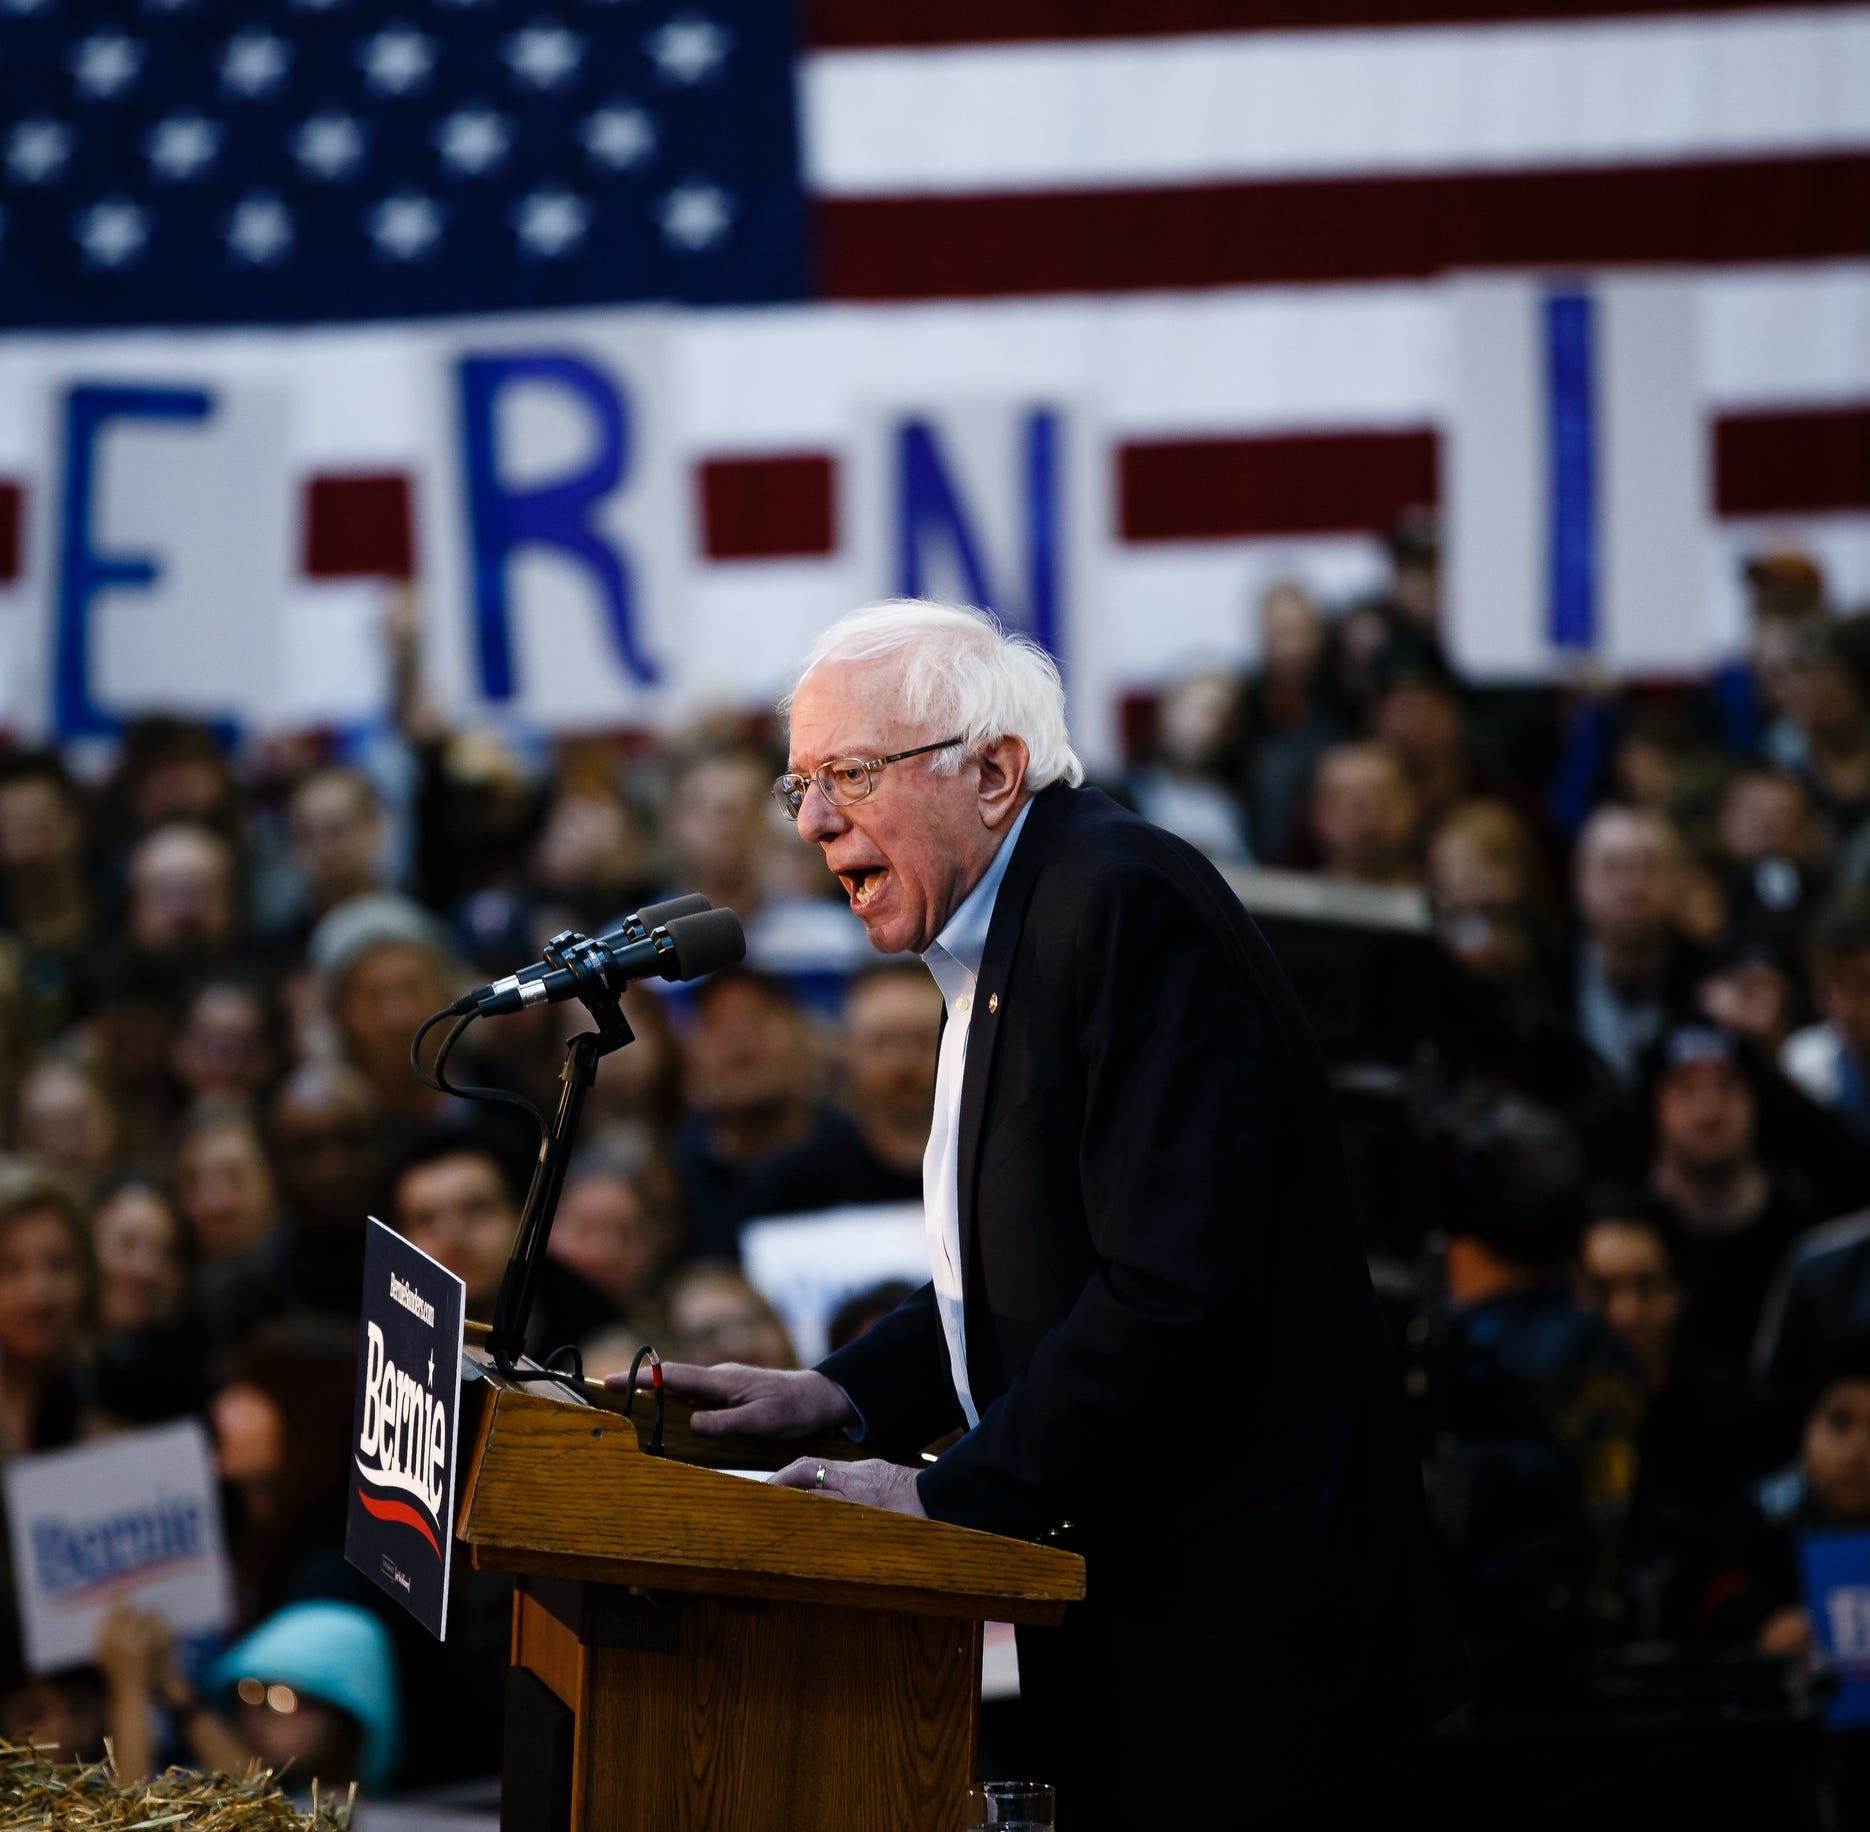 In Iowa, Bernie Sanders pledges he won't 'belittle' other Democrats, will support eventual nominee